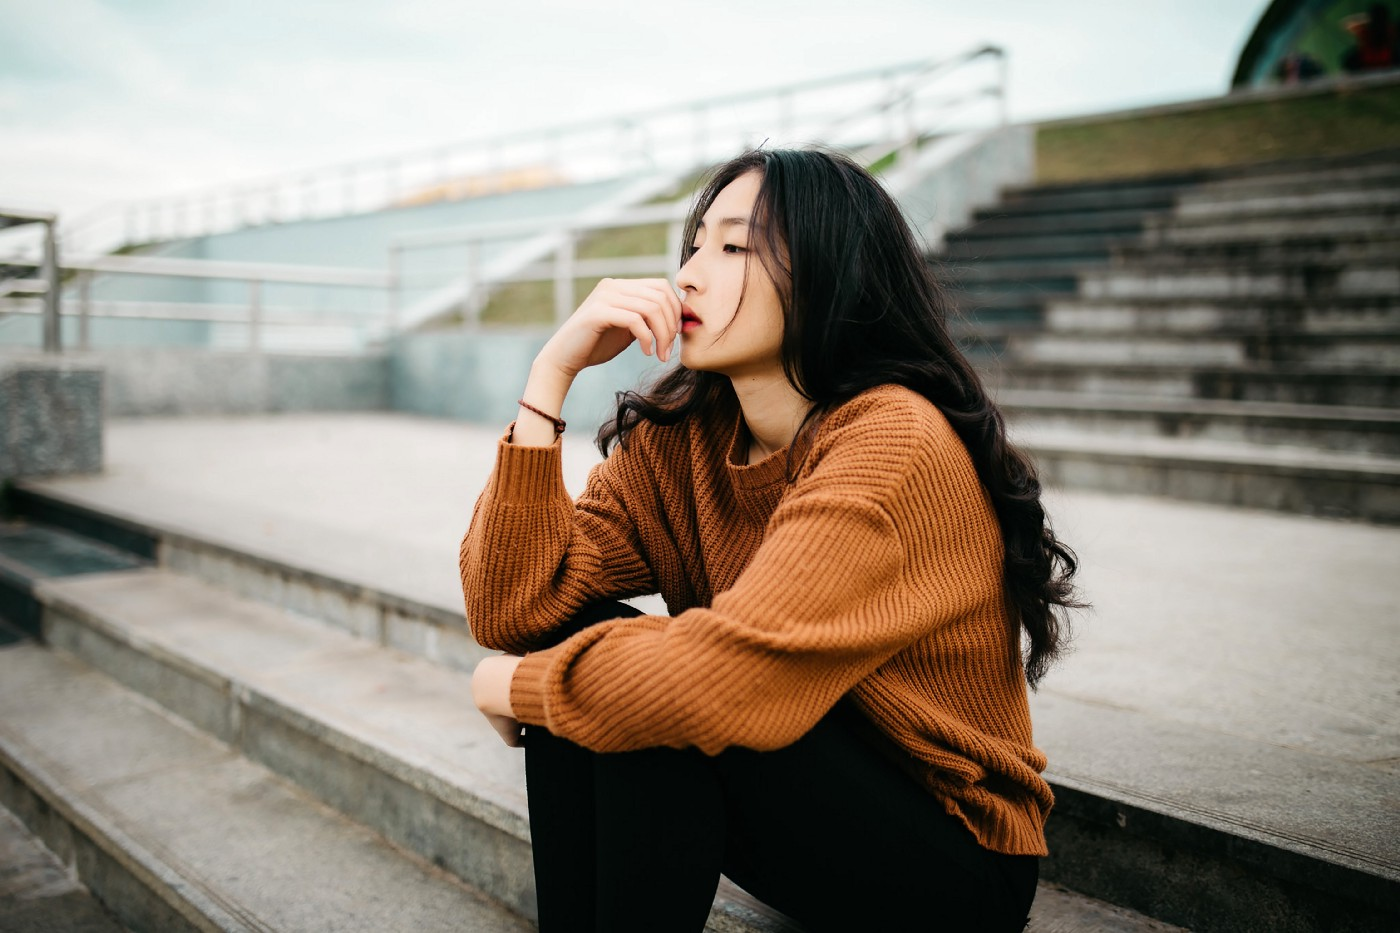 Women sitting on stadium steps with a chestnut sweatshirt and black jeans deep in thought.